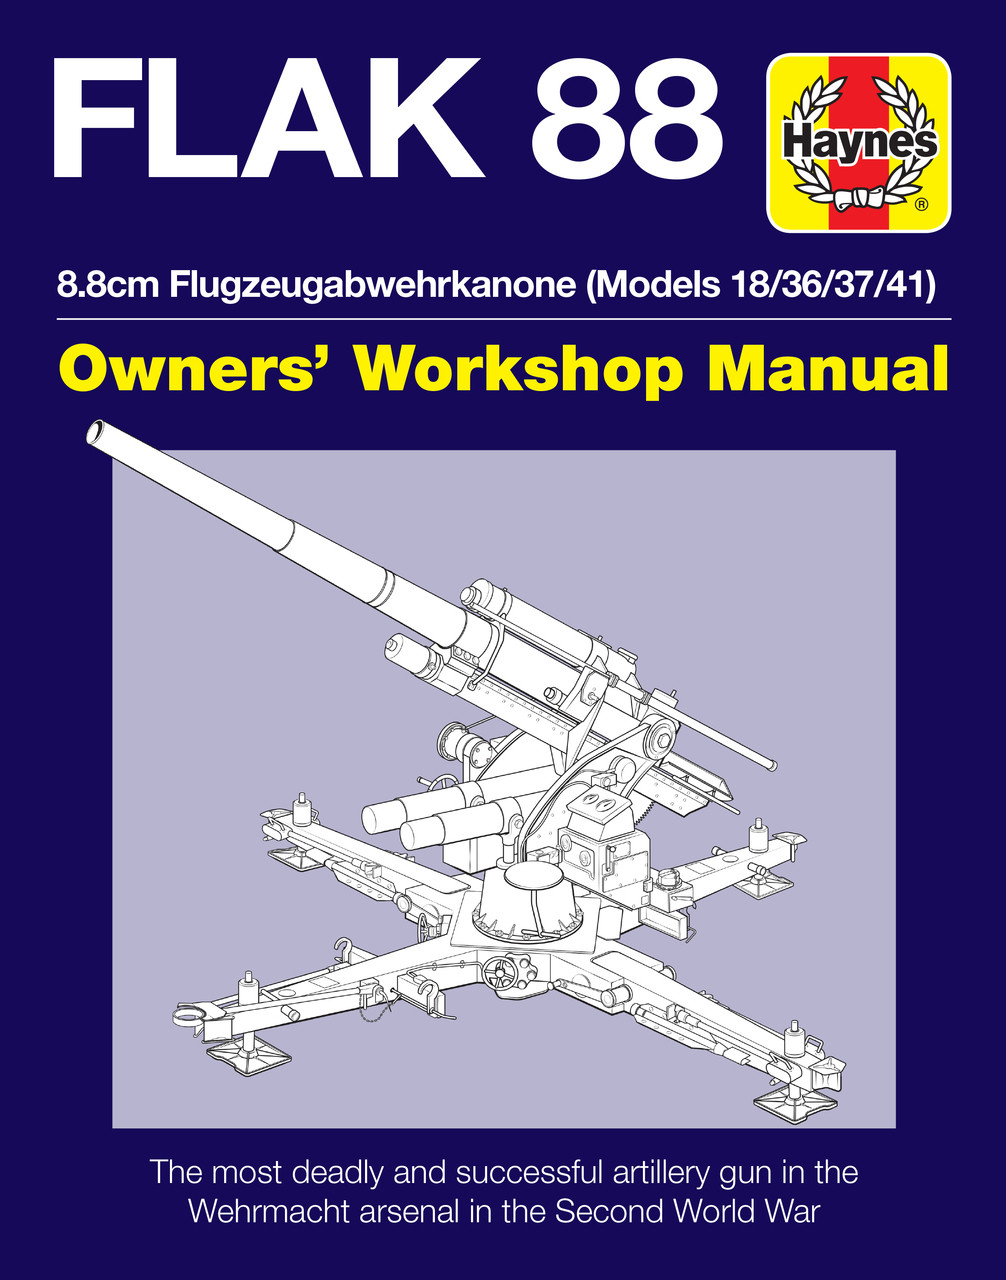 flak 88 owners workshop manual 88cm flugzeugabwehrkanone models 18 36 37 41 haynes manuals